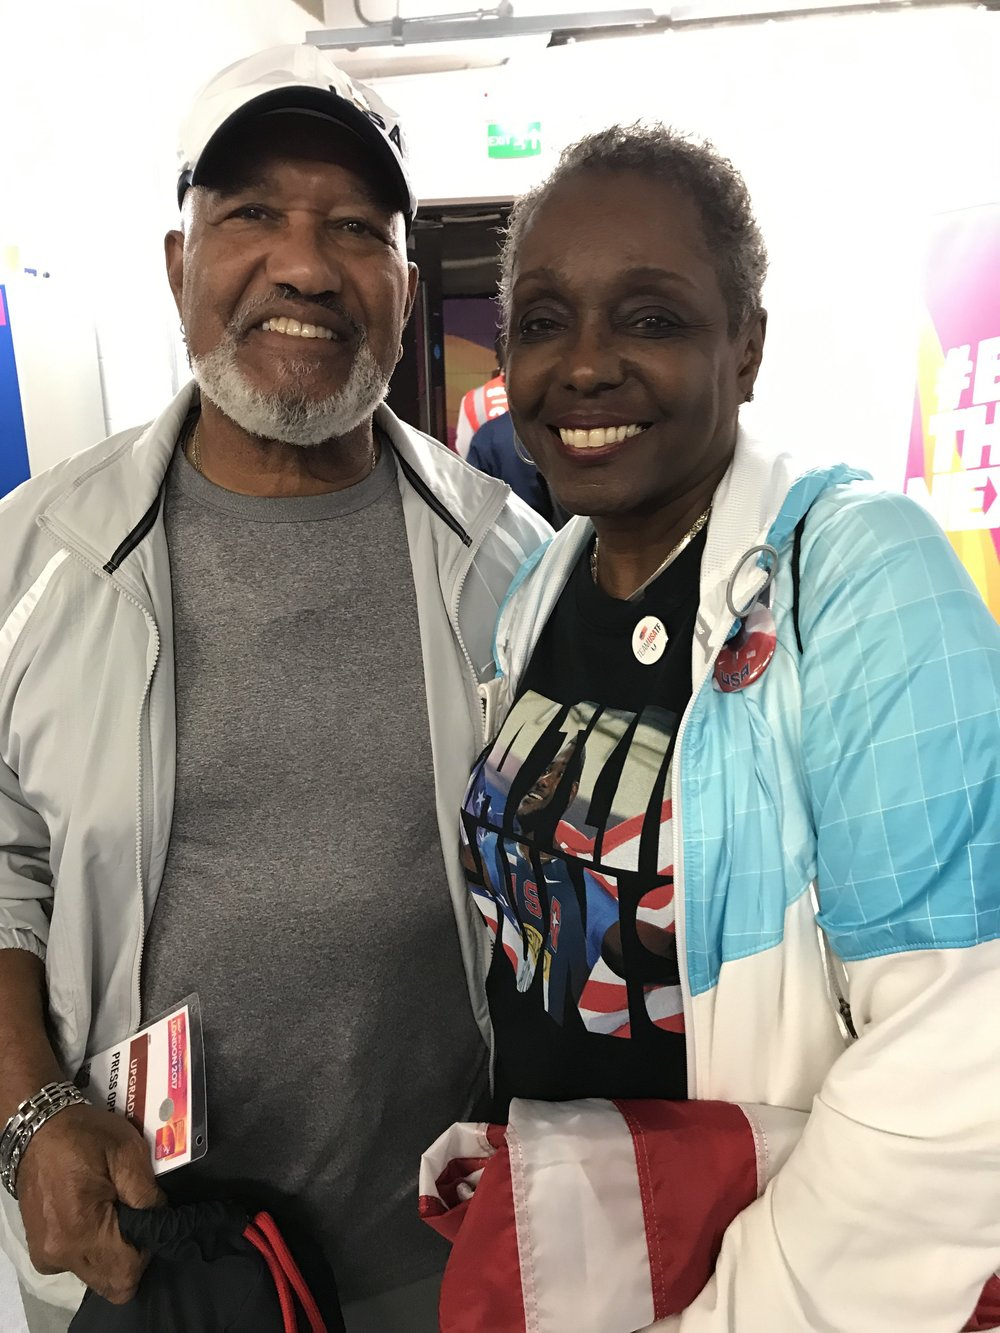 Justin Gatlin's parents, Willie and Jeanette, under Olympic Stadium late Saturday